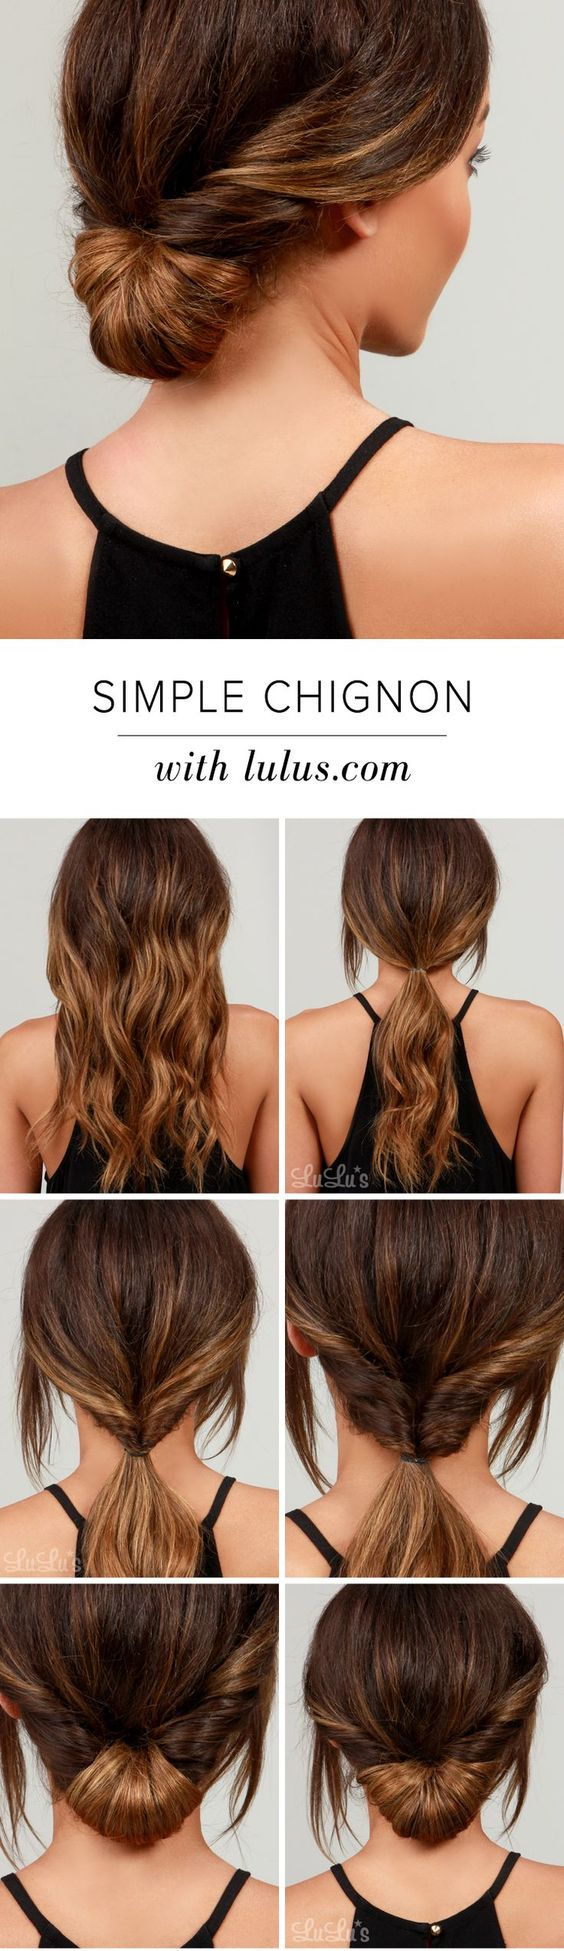 LuLu*s How-To: Simple Chignon Hair Tutorial. Step by step tutorial for getting a modern and easy updo.: